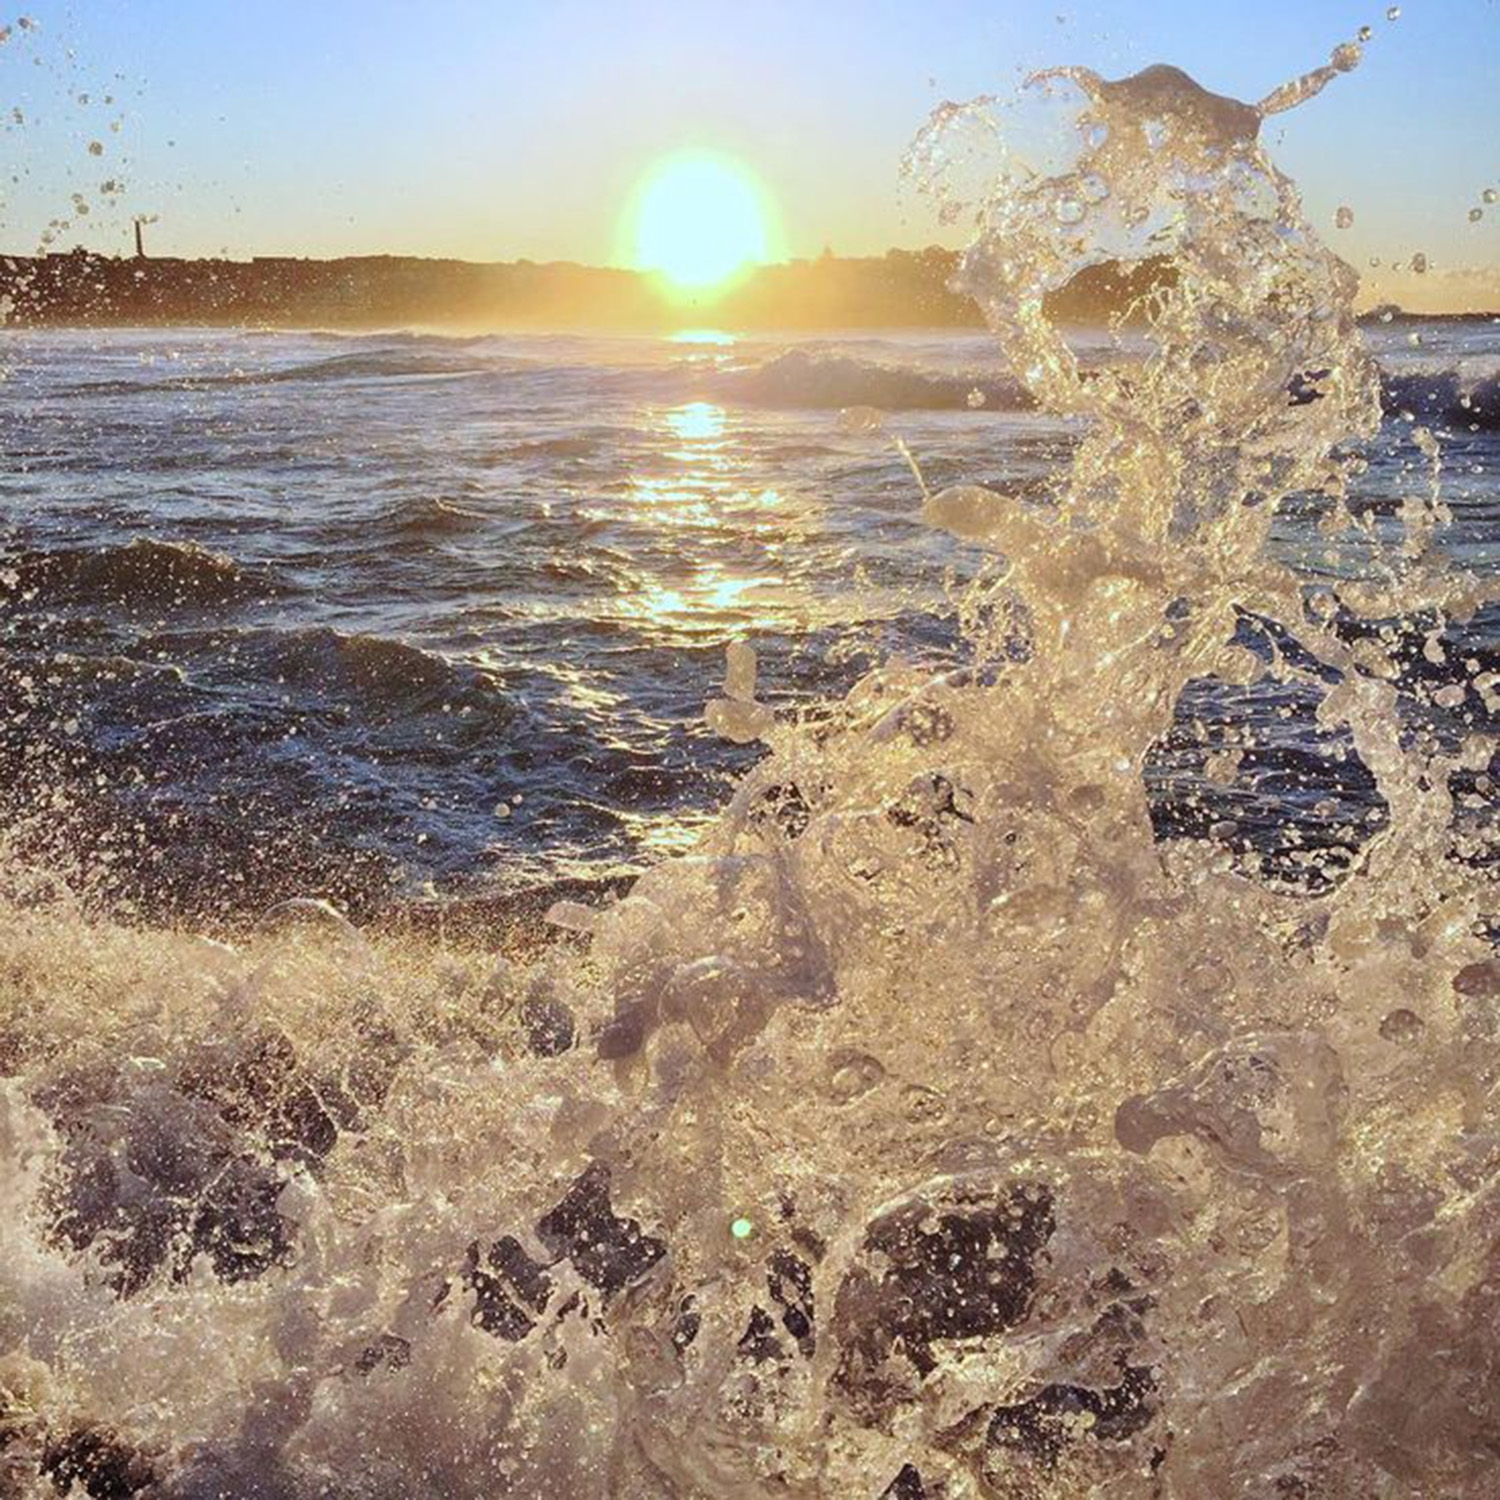 The waves splashing at Bondi on a cool winter morning